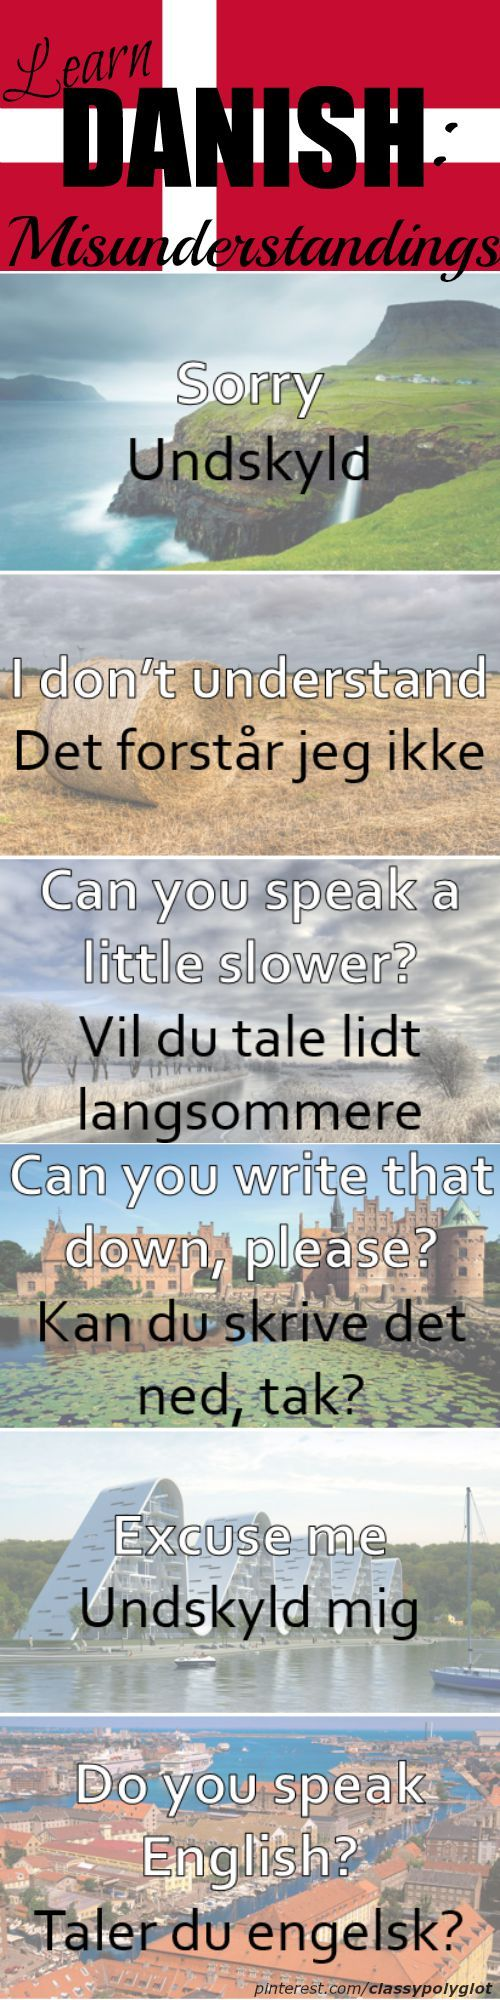 How to Speak Danish: 12 Steps (with Pictures) - wikiHow